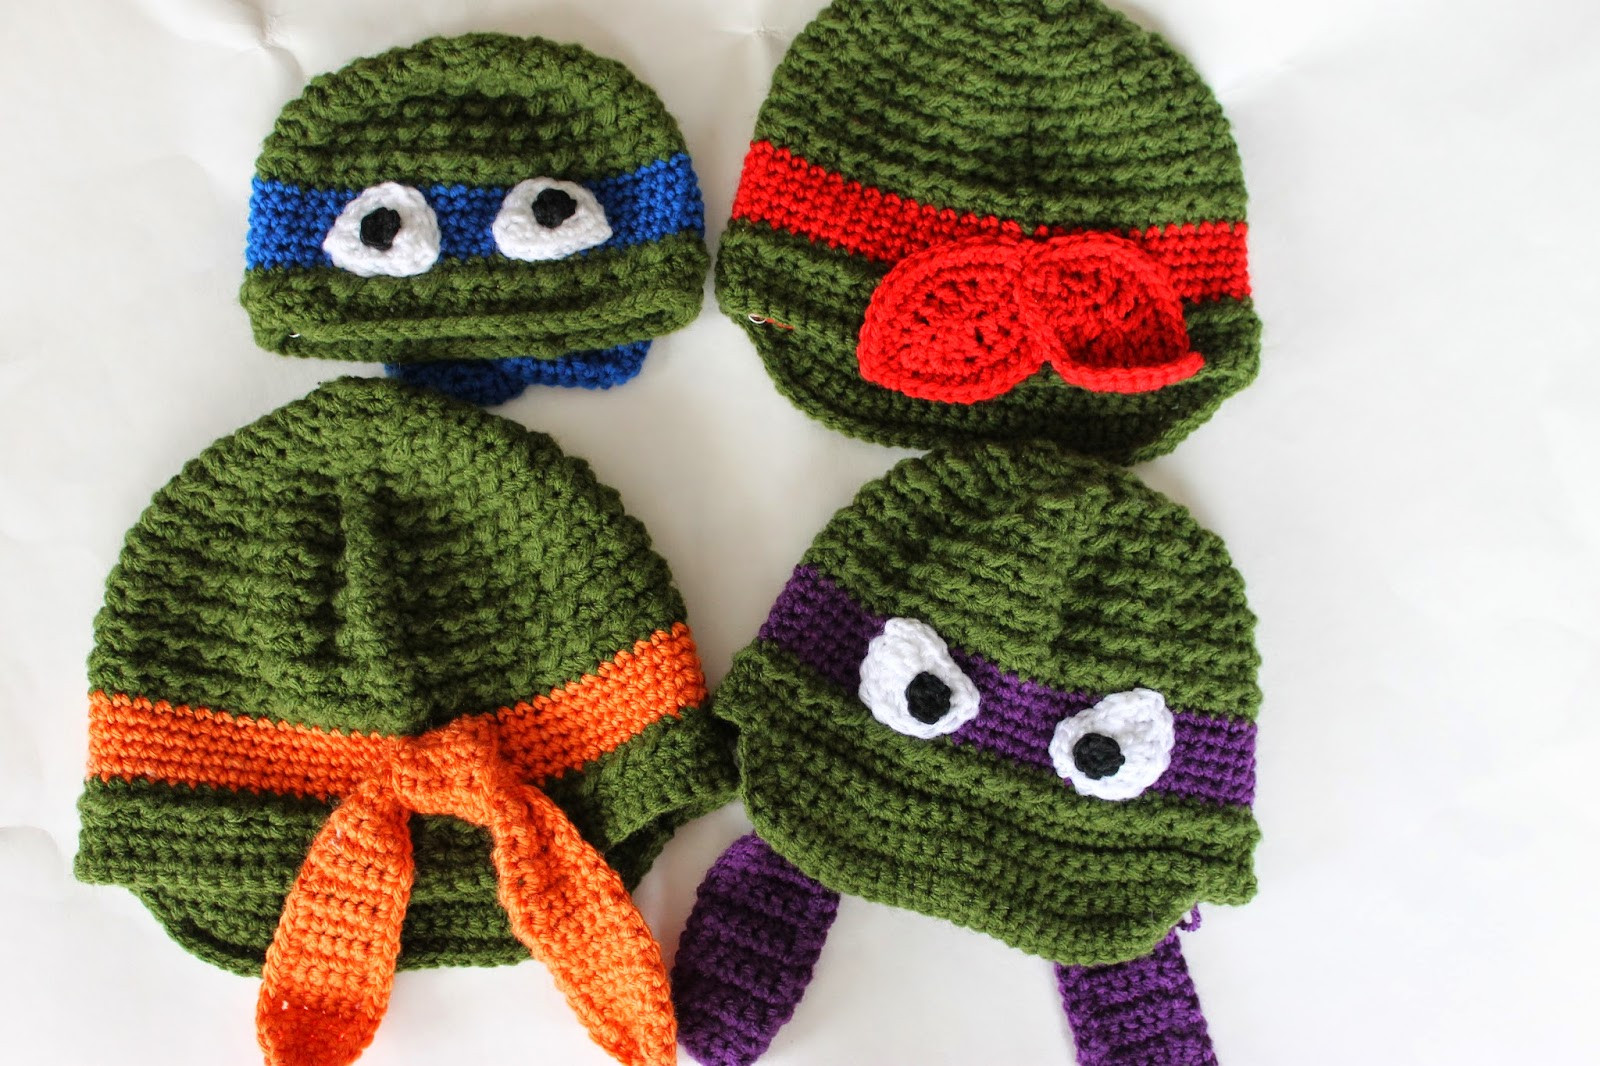 Crochet Ninja Turtle Hat Luxury Stay Home Stitchings Ninja Turtle Newsboy and Beanie Pattern Of Innovative 46 Pictures Crochet Ninja Turtle Hat